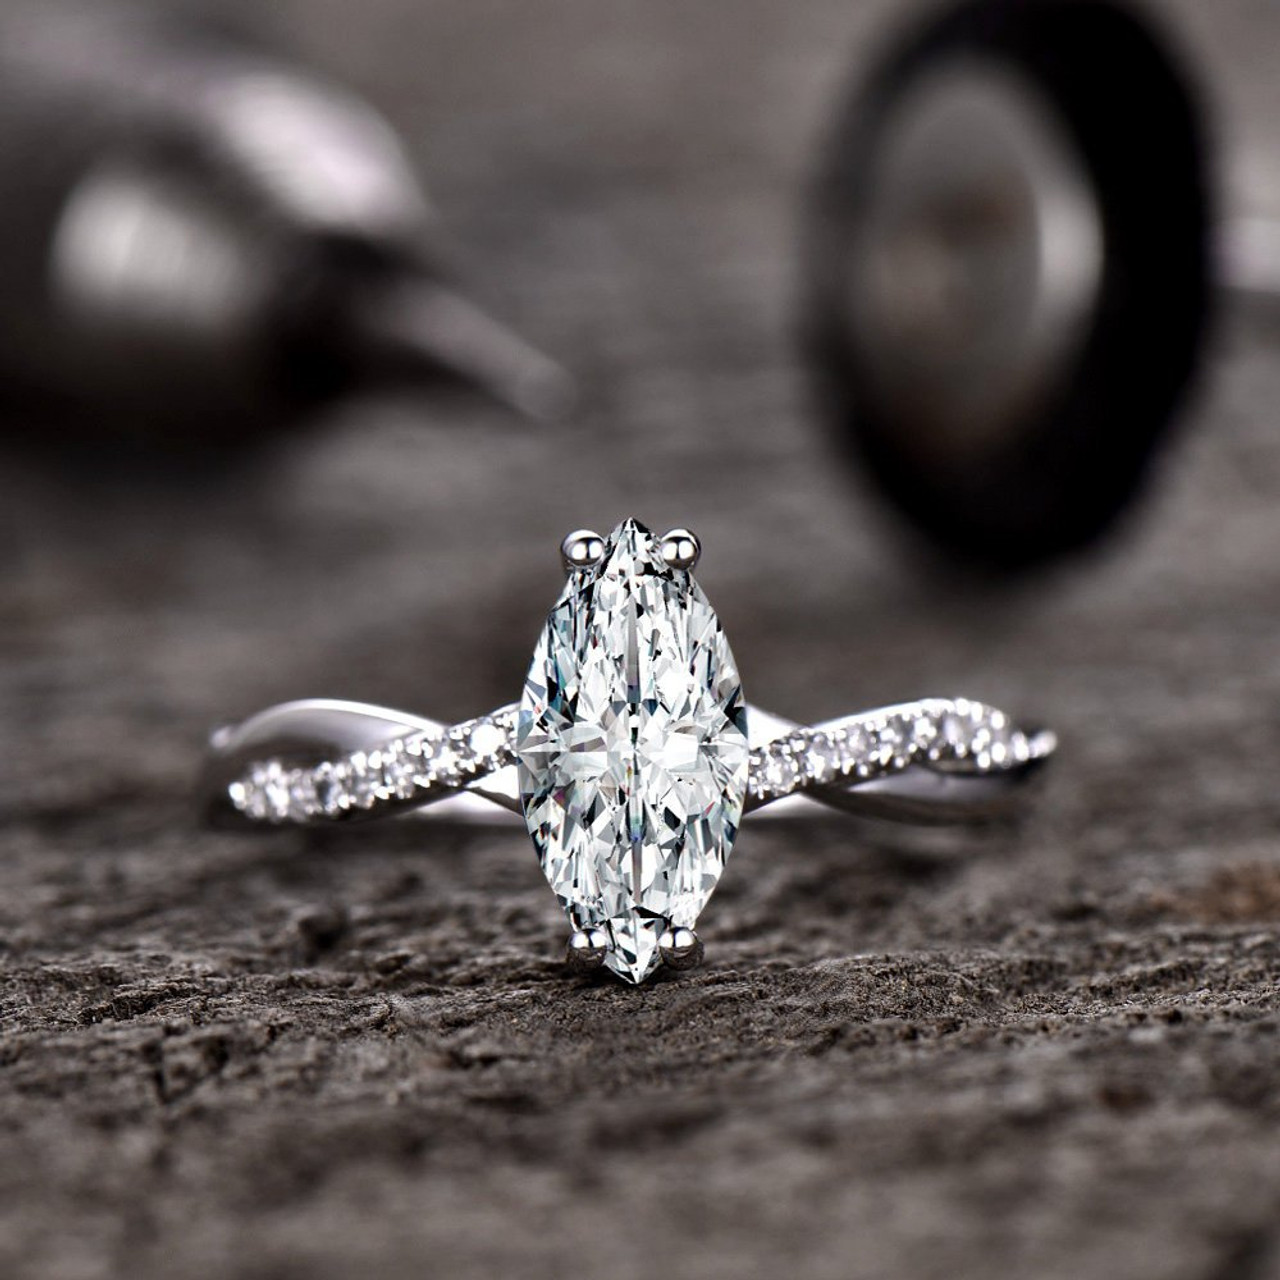 Forever One Moissanite Engagement Ring Solitaire Marquise Cut Moissanite Ring Diamond Eternity Band Infinity Wedding Band Twist 14k Gold Bbbgem